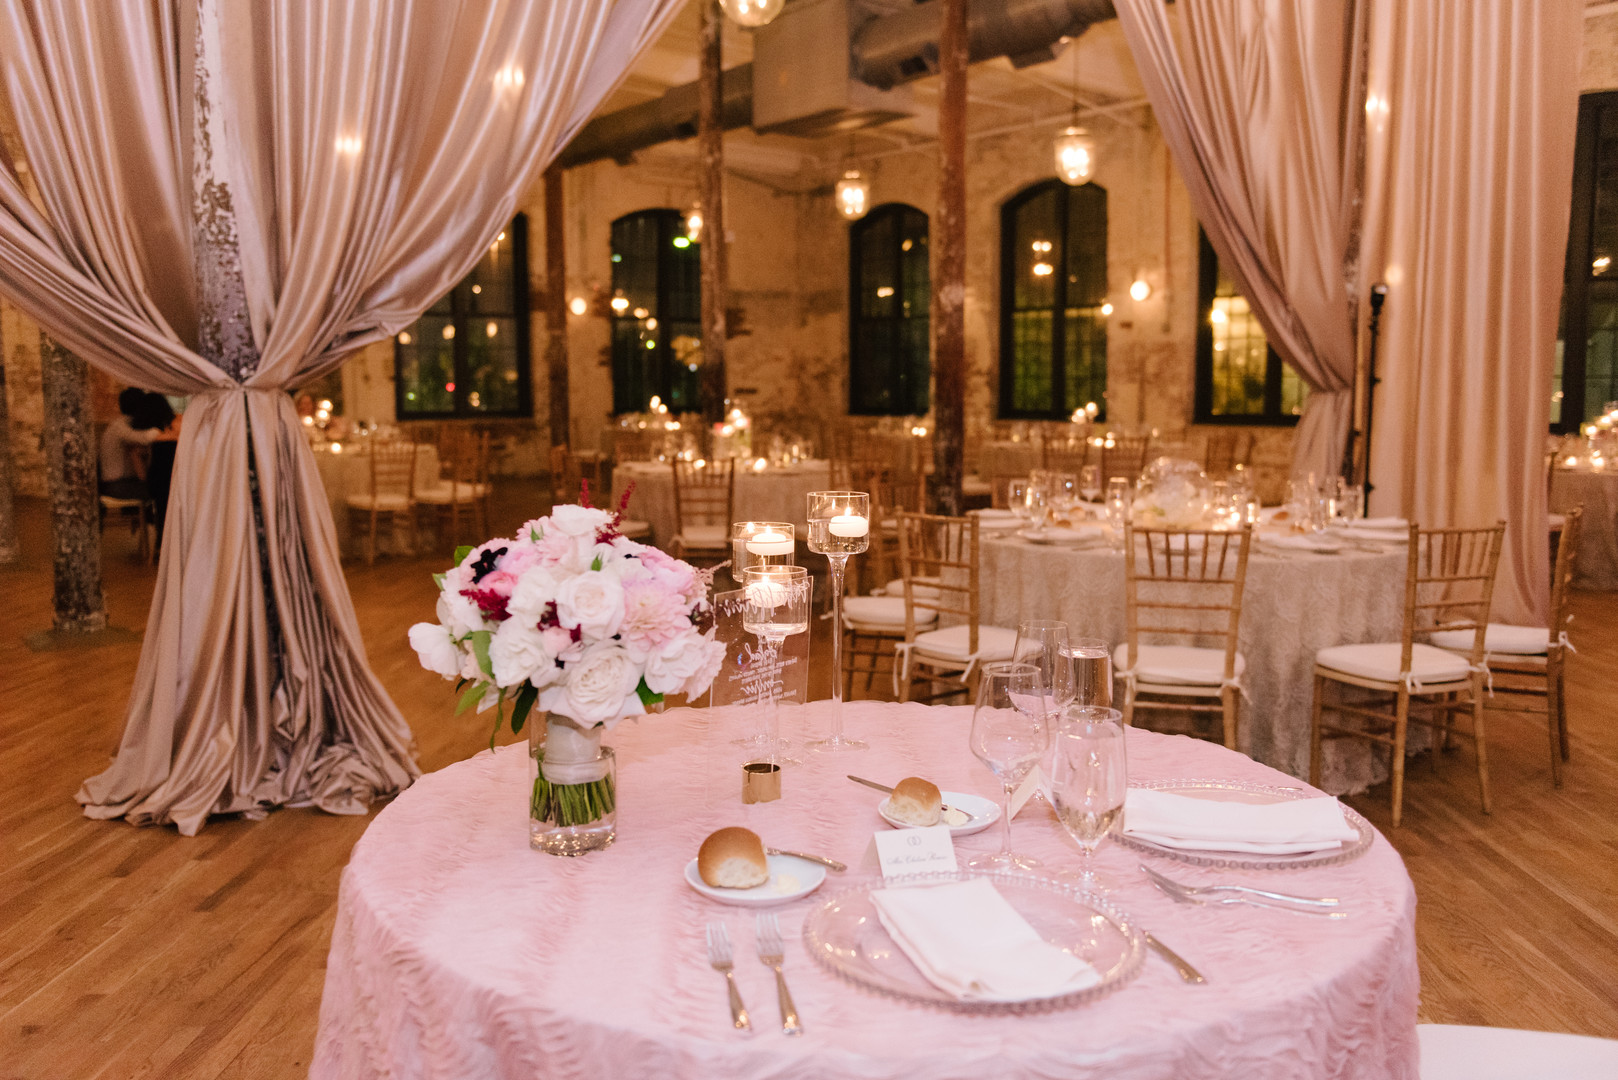 cedar-room-wedding-38.jpg